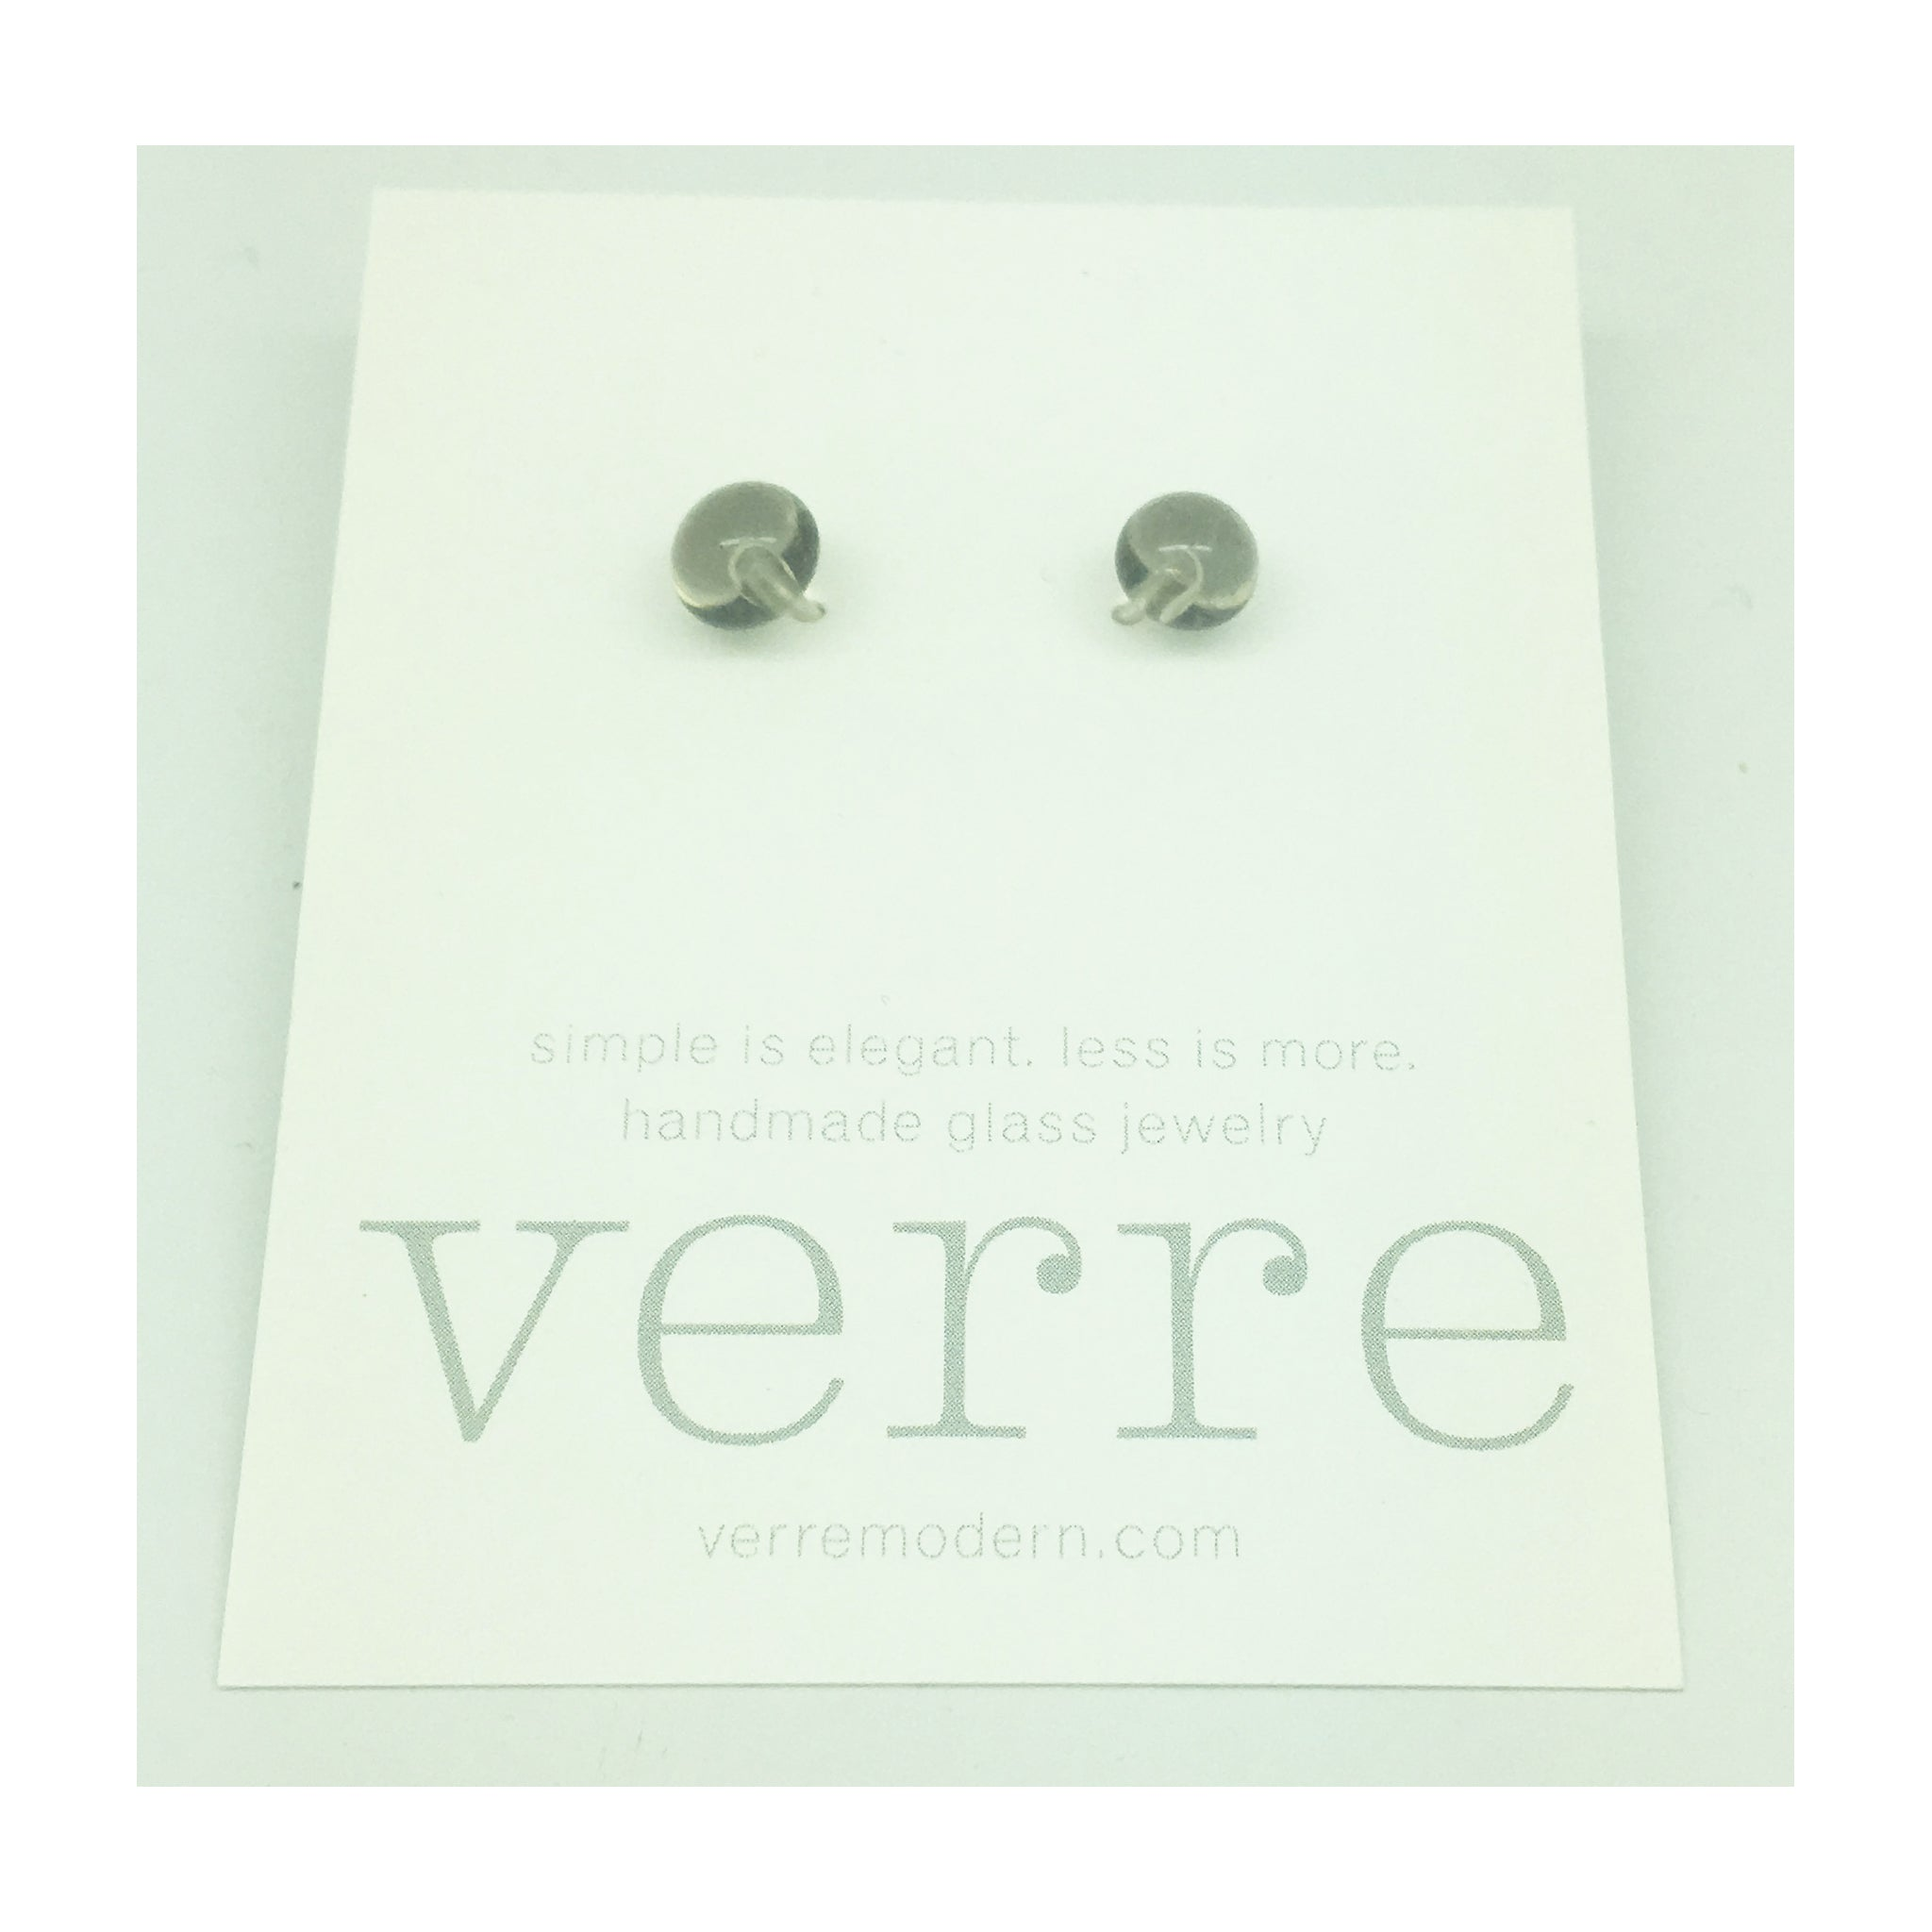 Verre Modern stud earrings